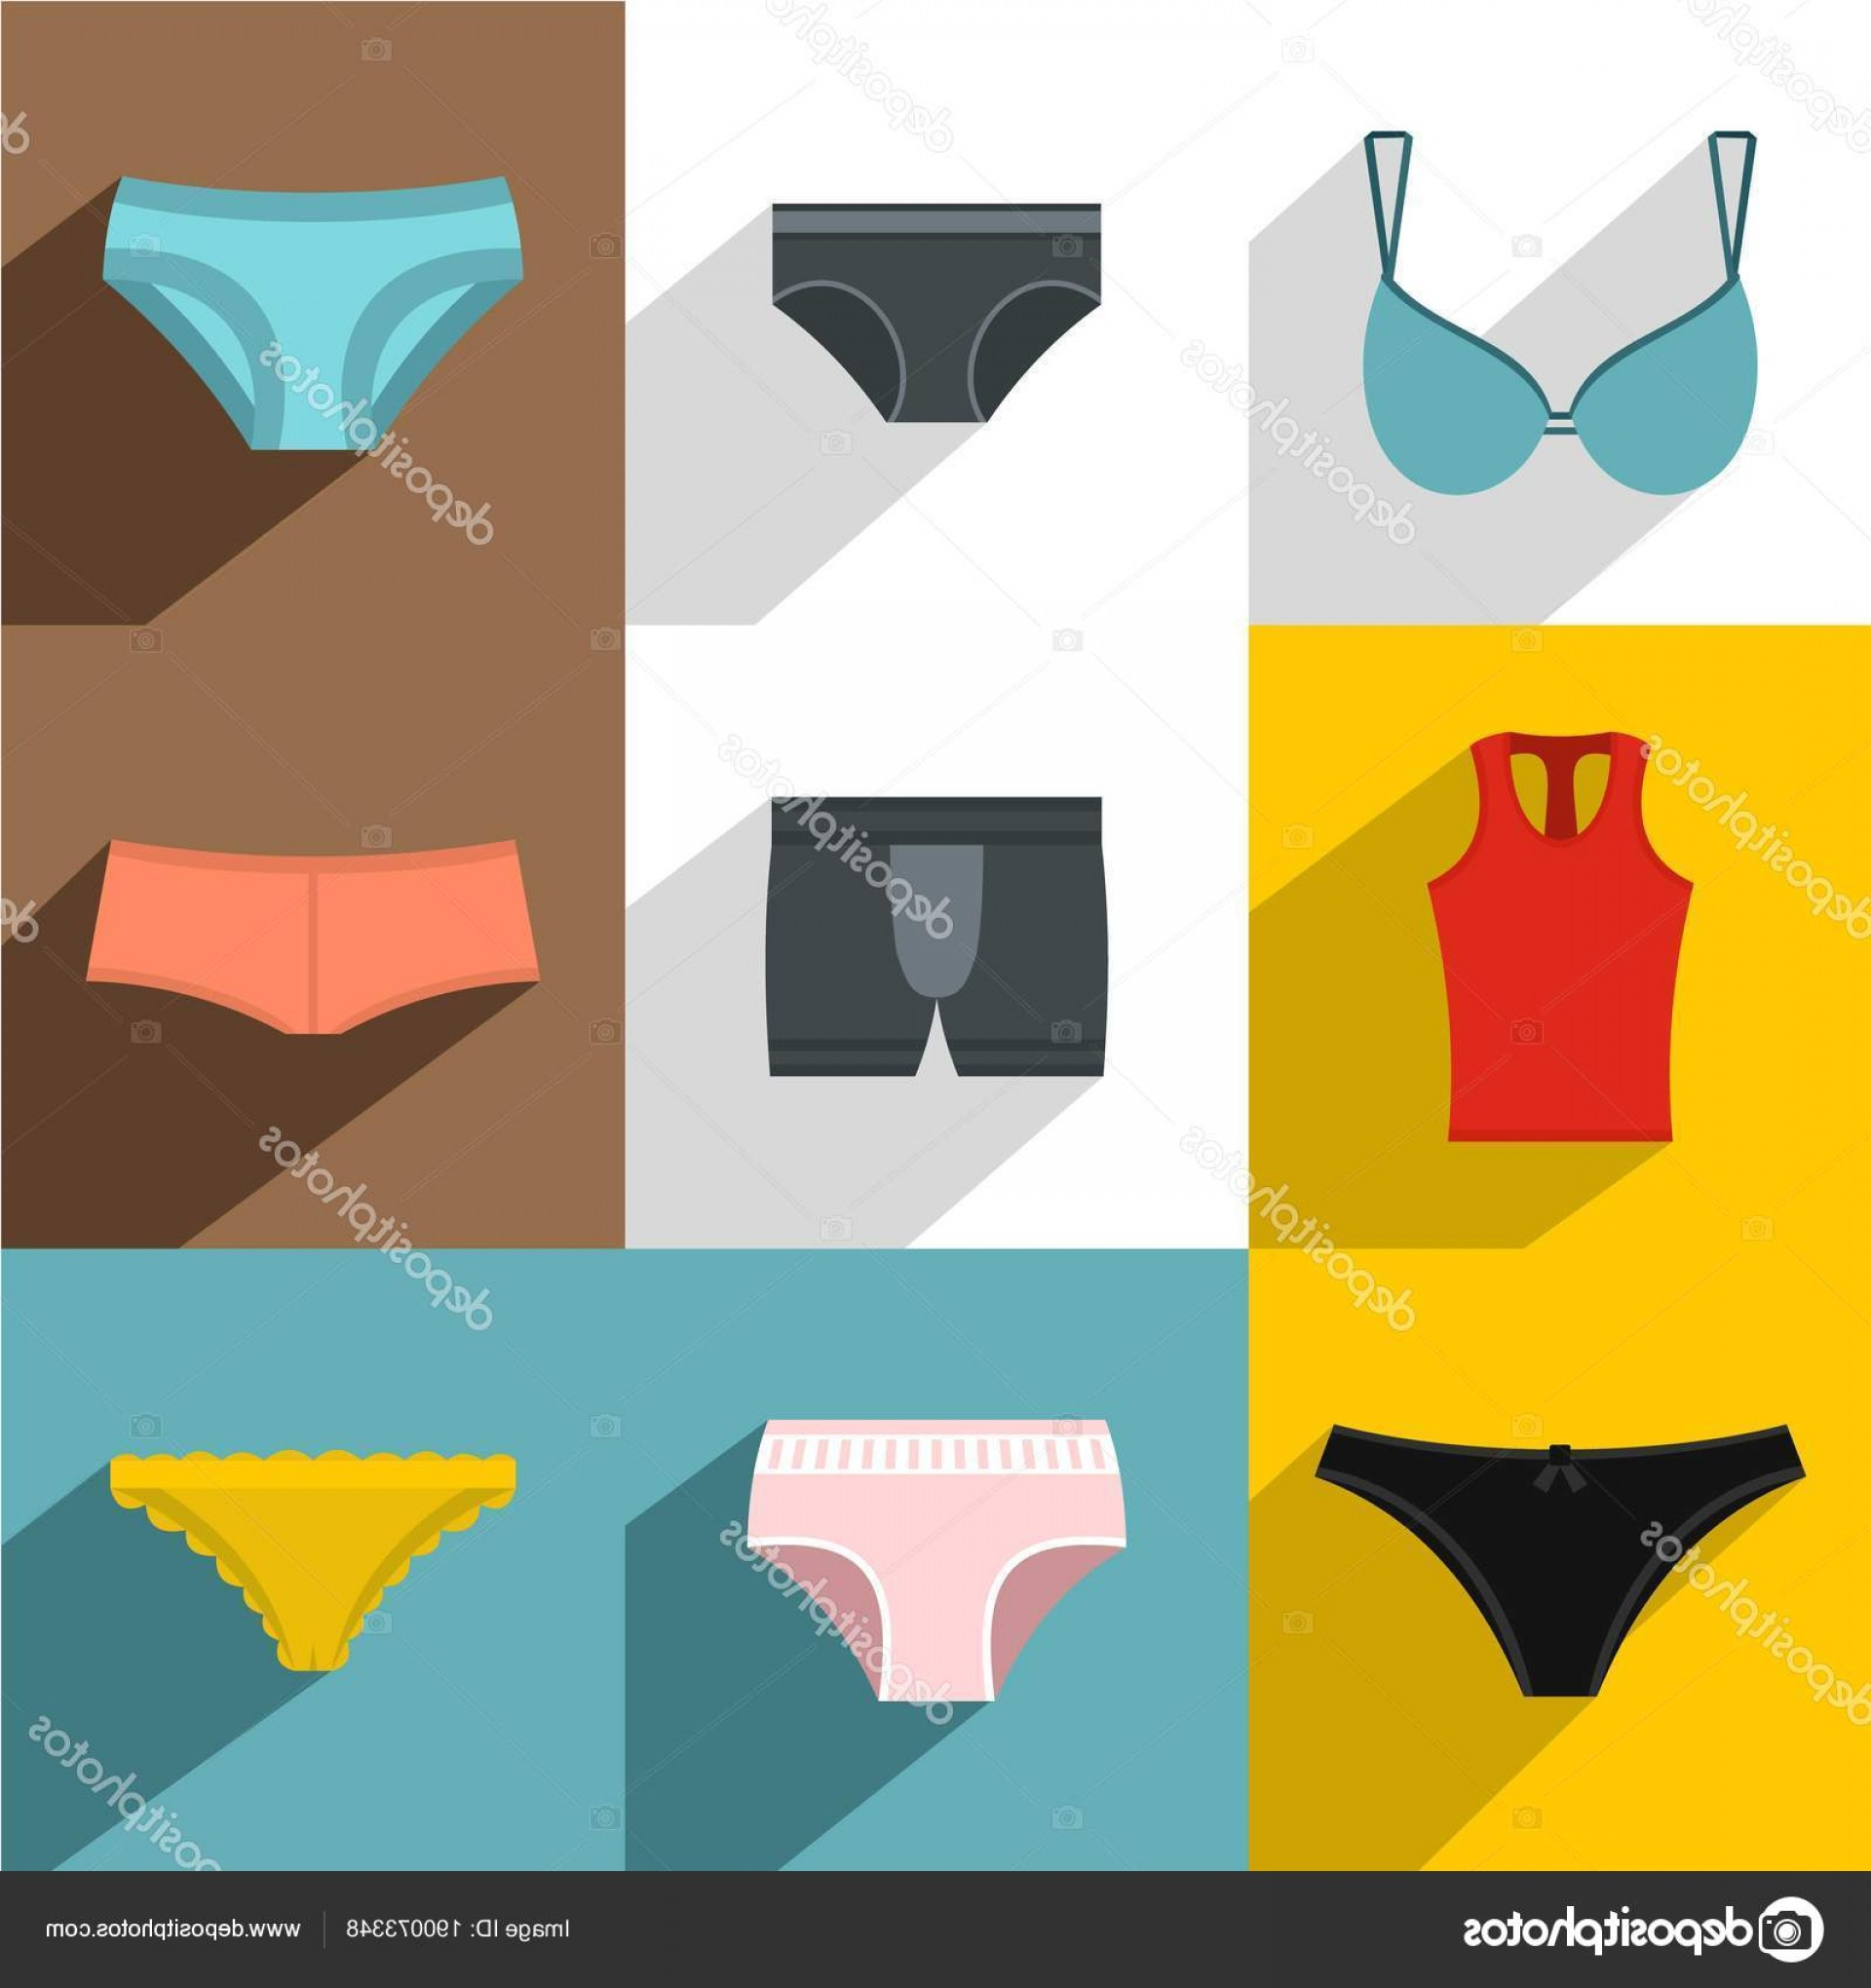 Underwear Icon Design Vector: Stock Illustration Underwear Icon Set Flat Style